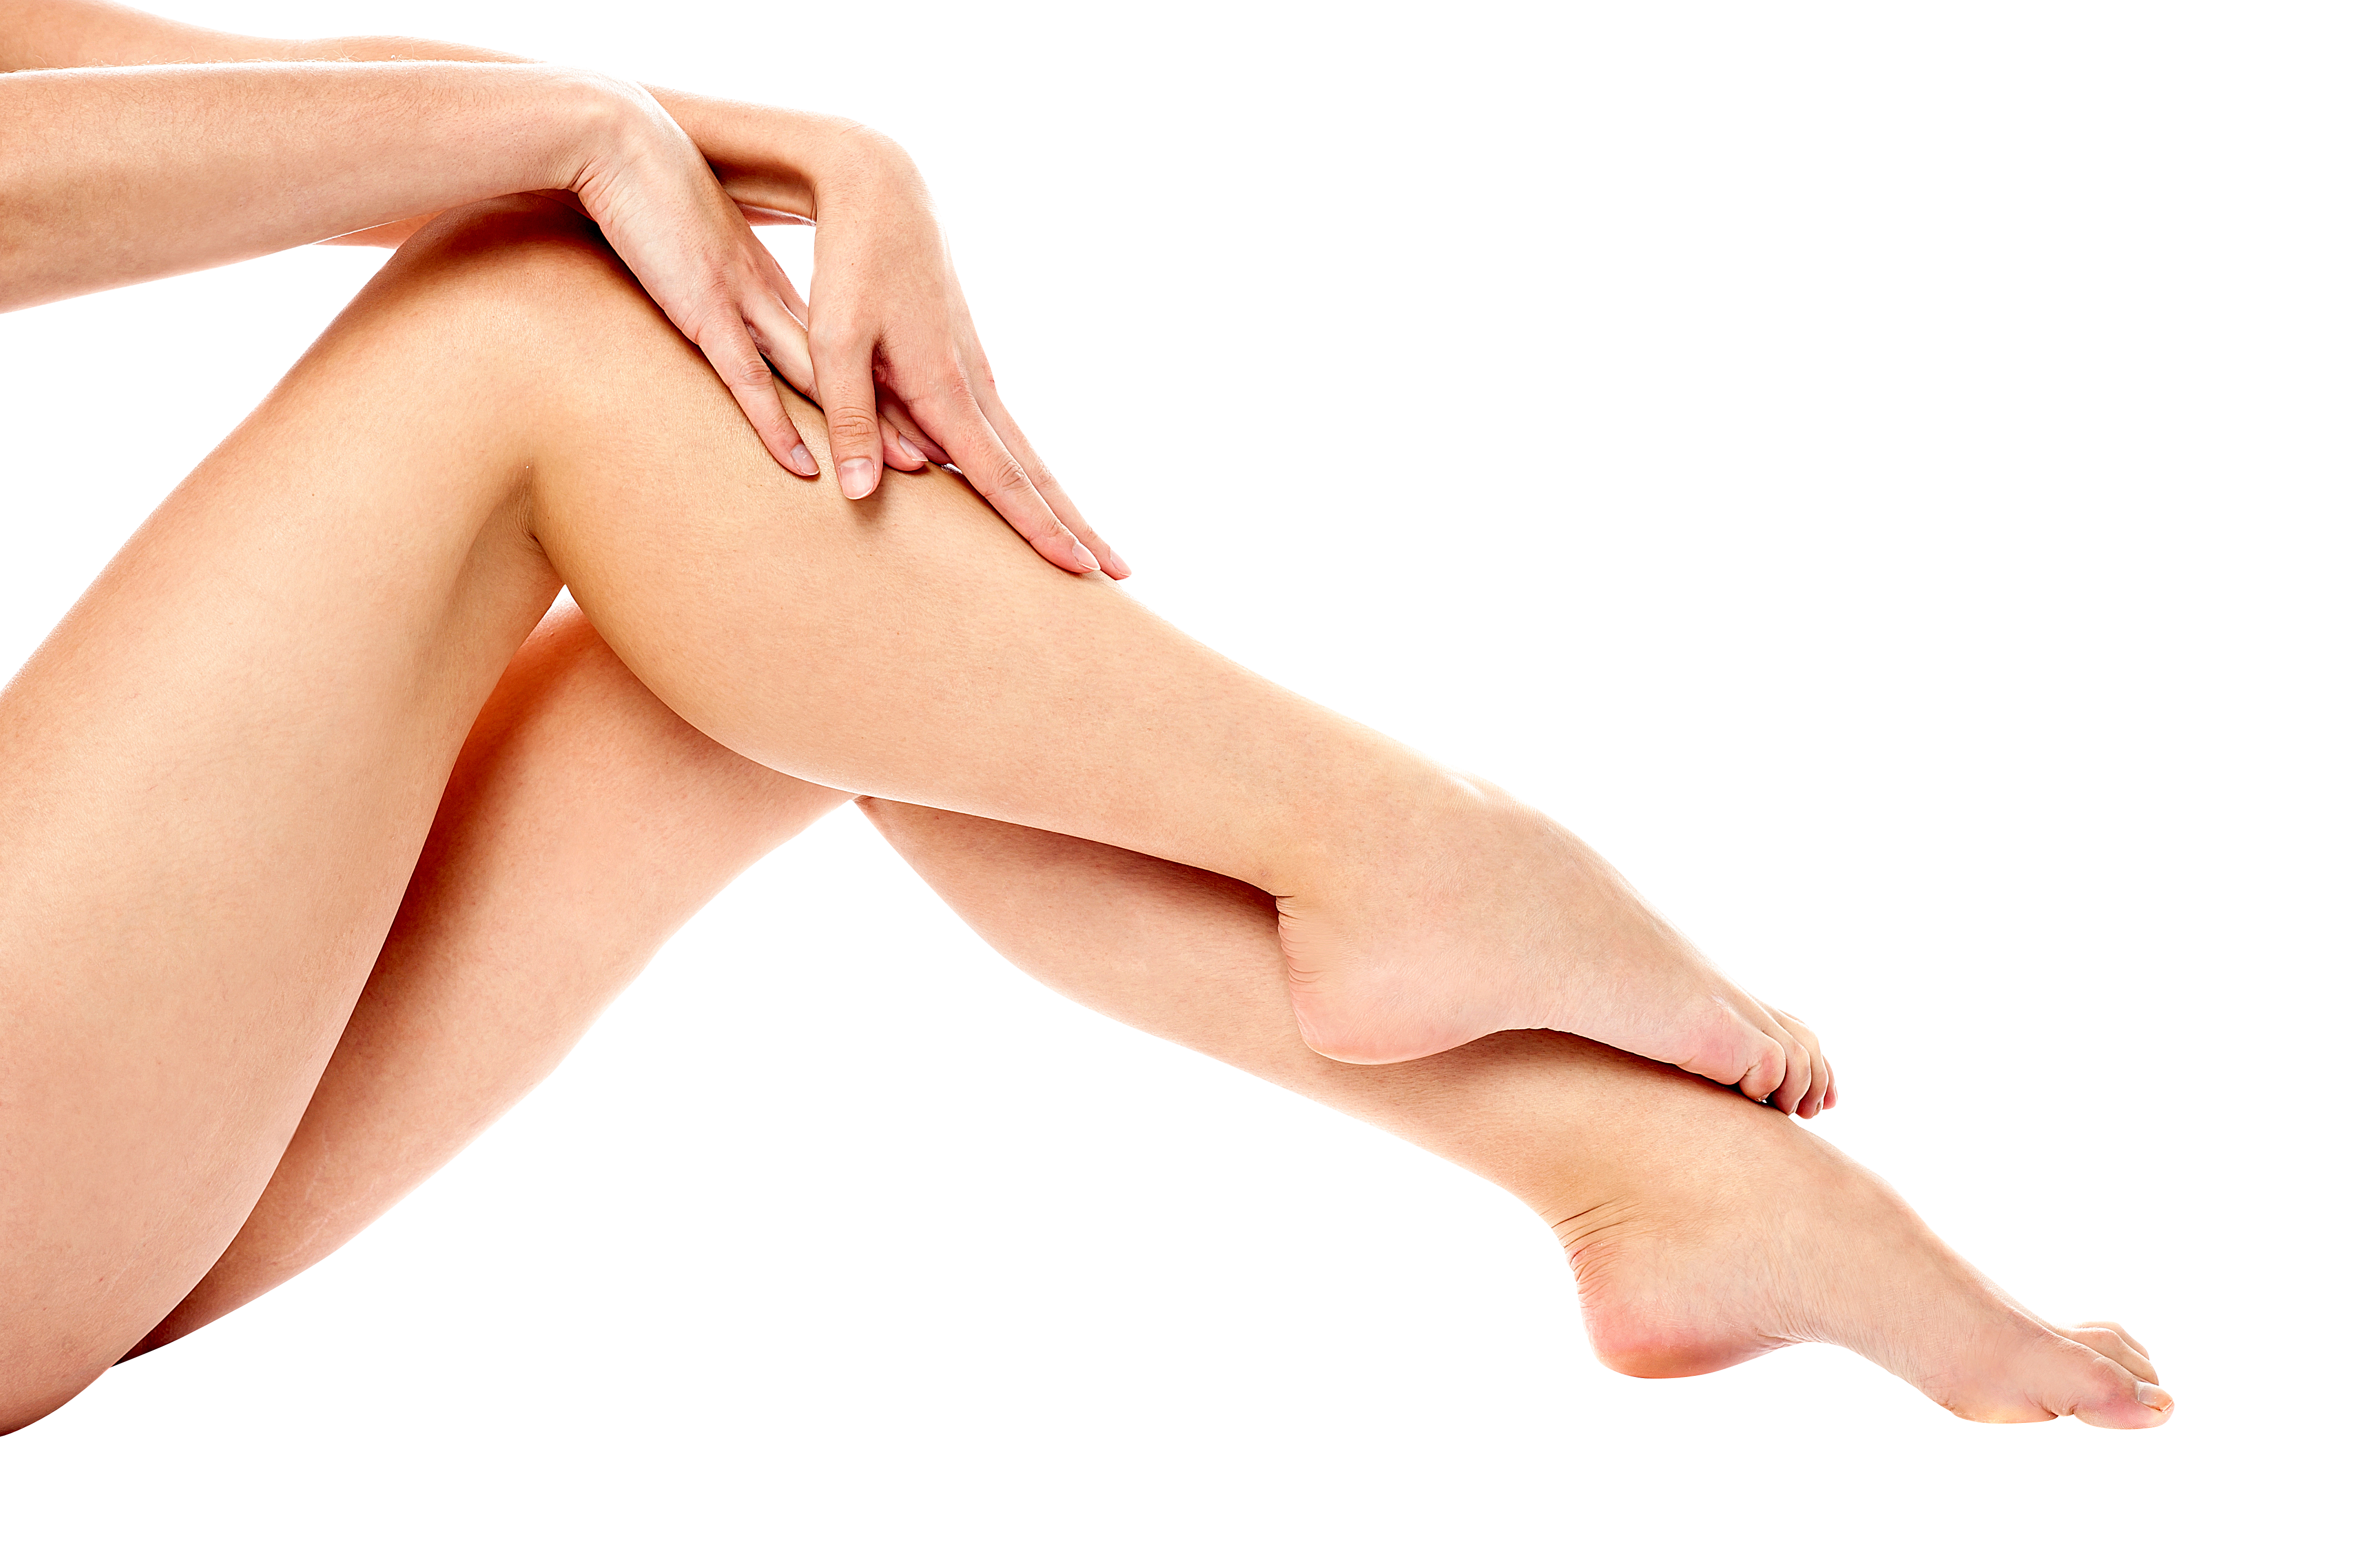 Female legs png. Royalty free images play